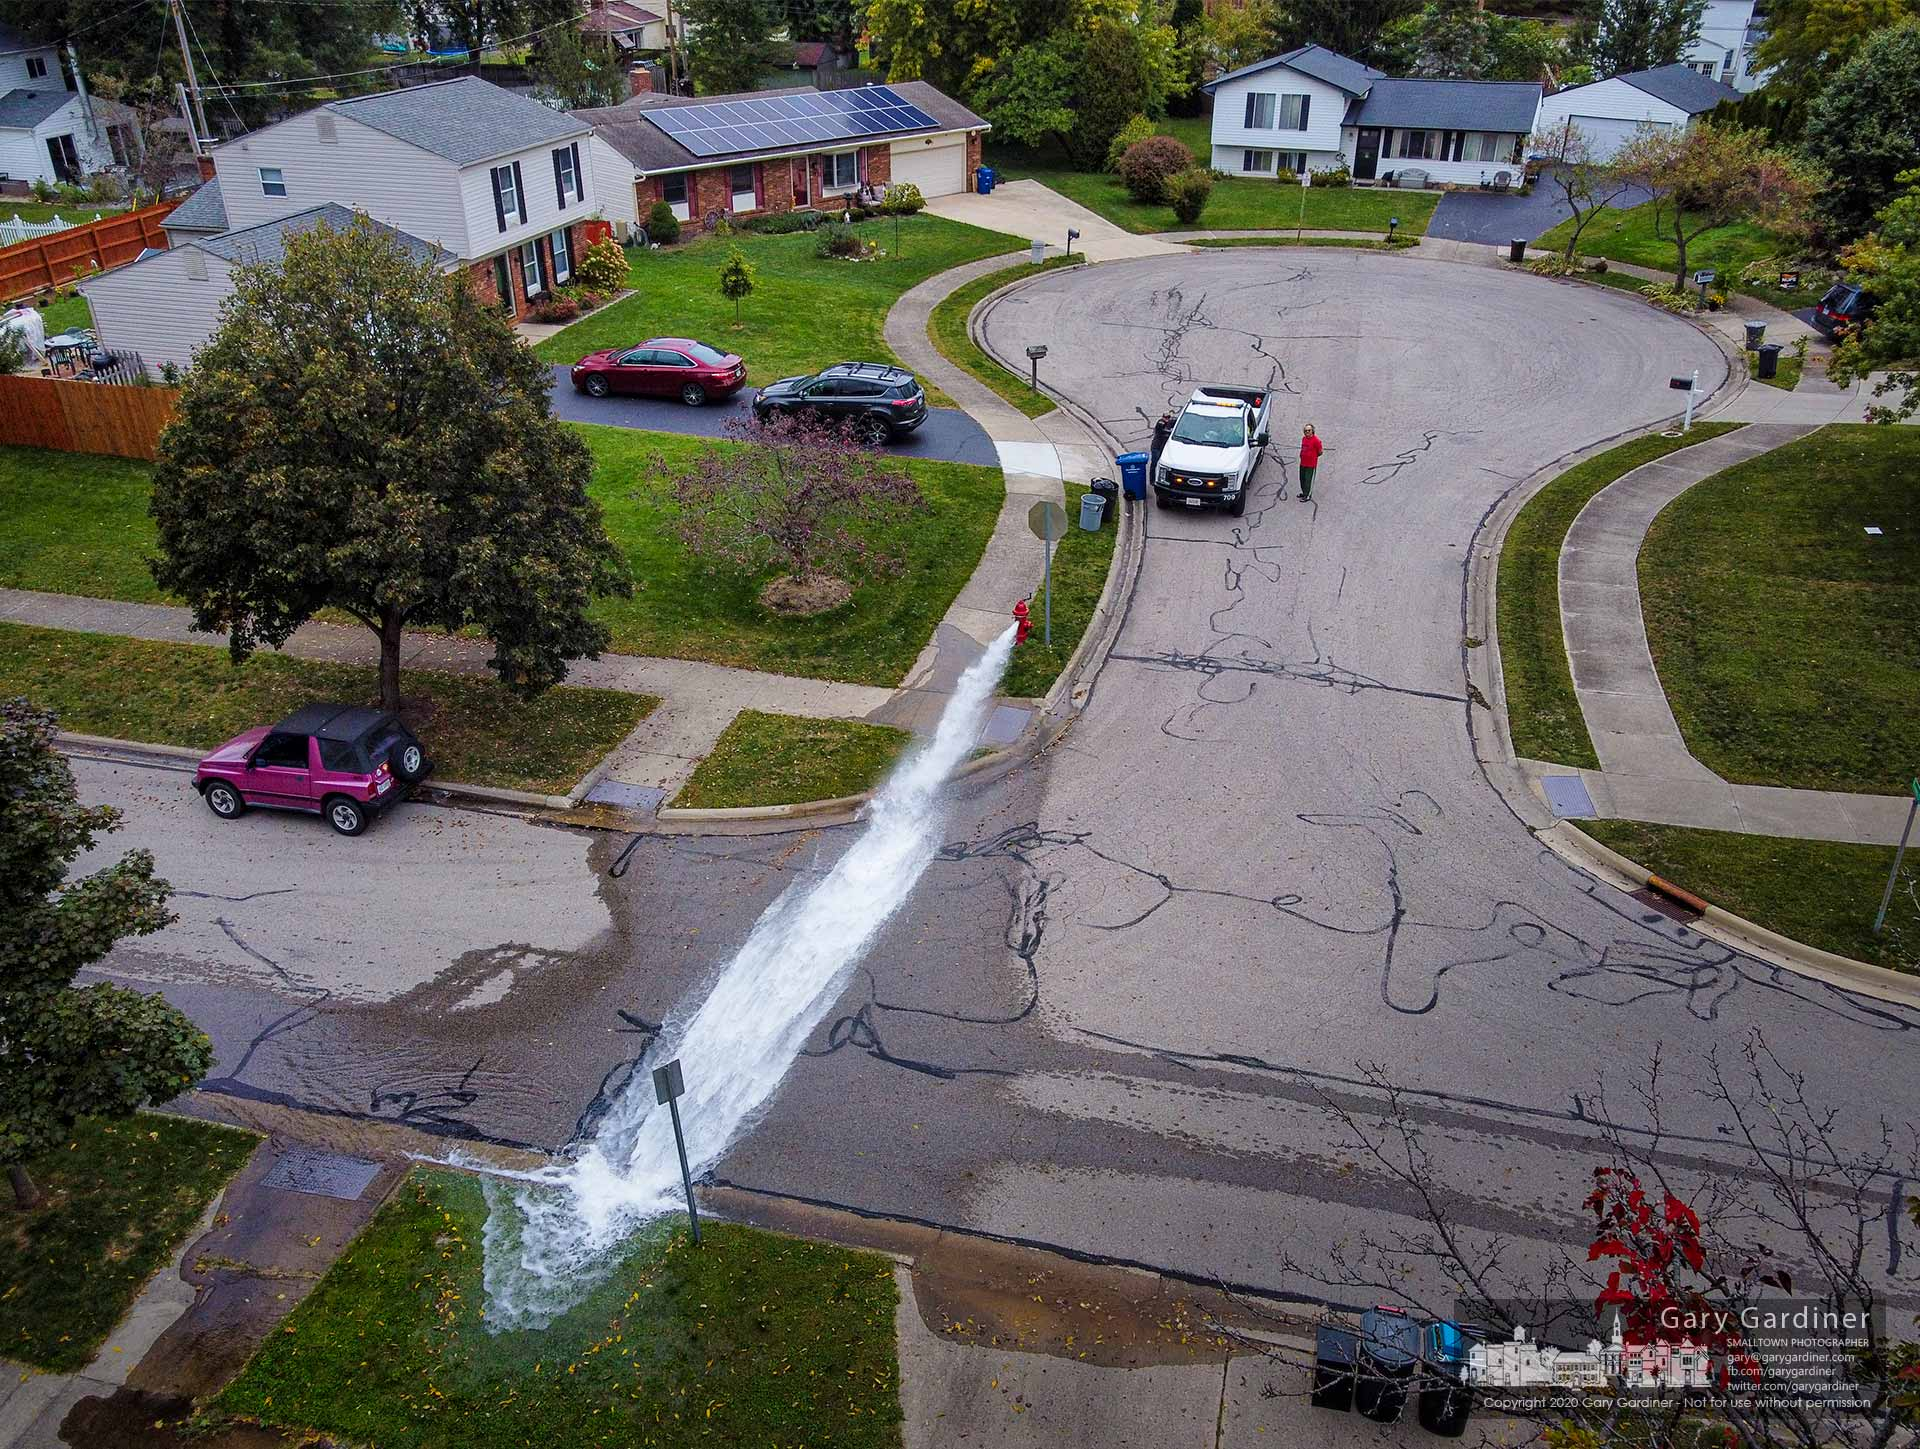 Water from a hydrant opened for testing by city workers flows across Lakeland Dr. My Final Photo for Sept. 29, 2020.